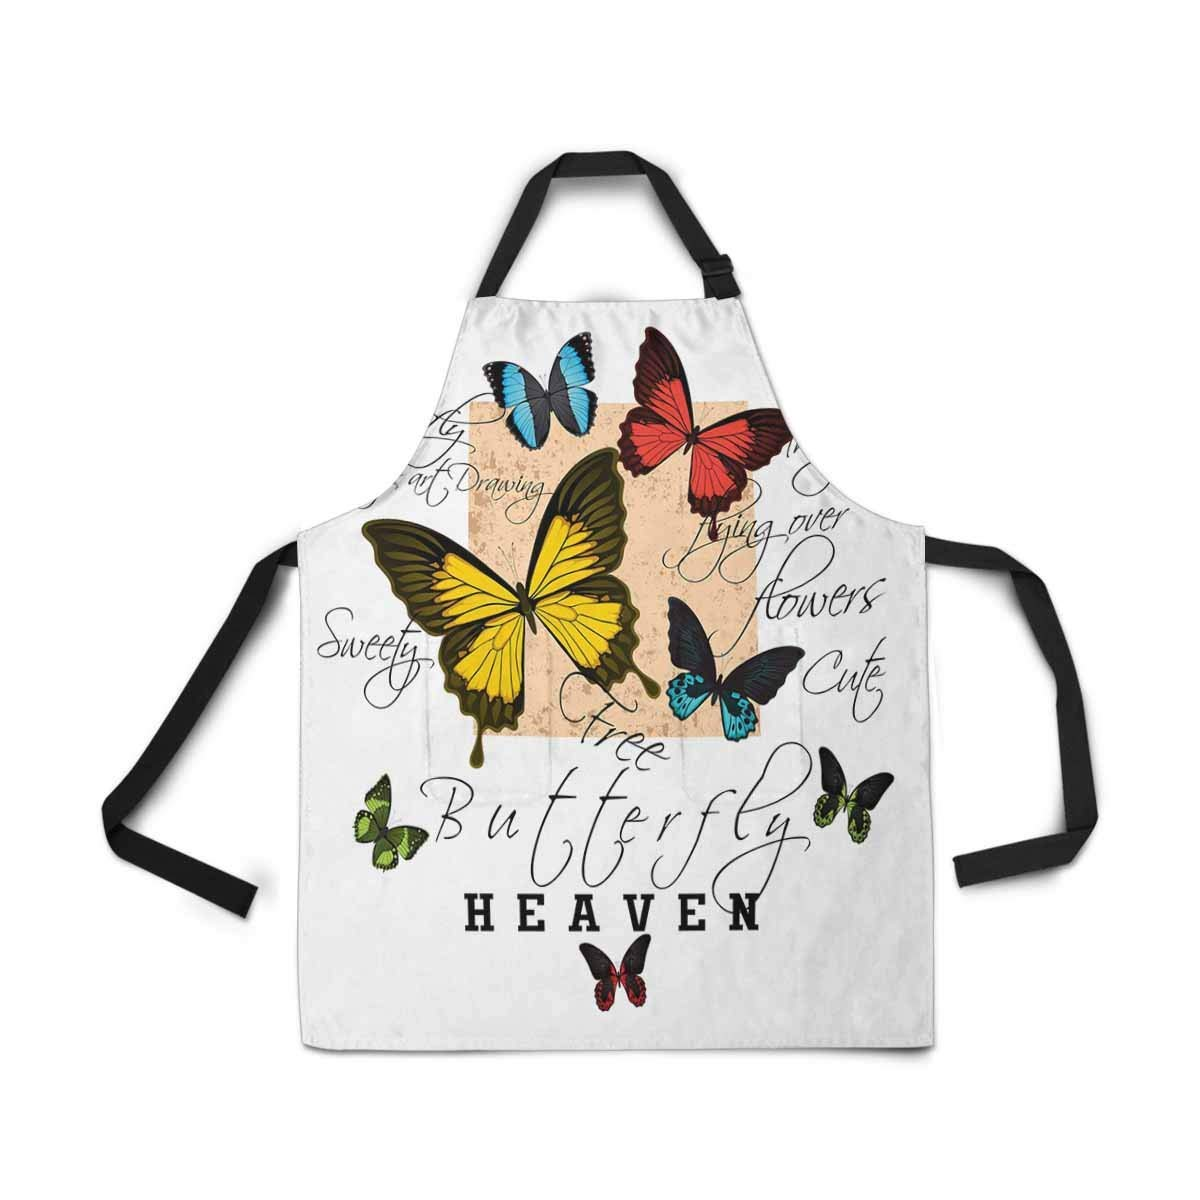 InterestPrint Vintage Colorful Butterfly Apron Kitchen Cook for Women Men Girls Chef with Pockets, White Funny Adjustable Bib Baking Paint Cooking Apron Dress